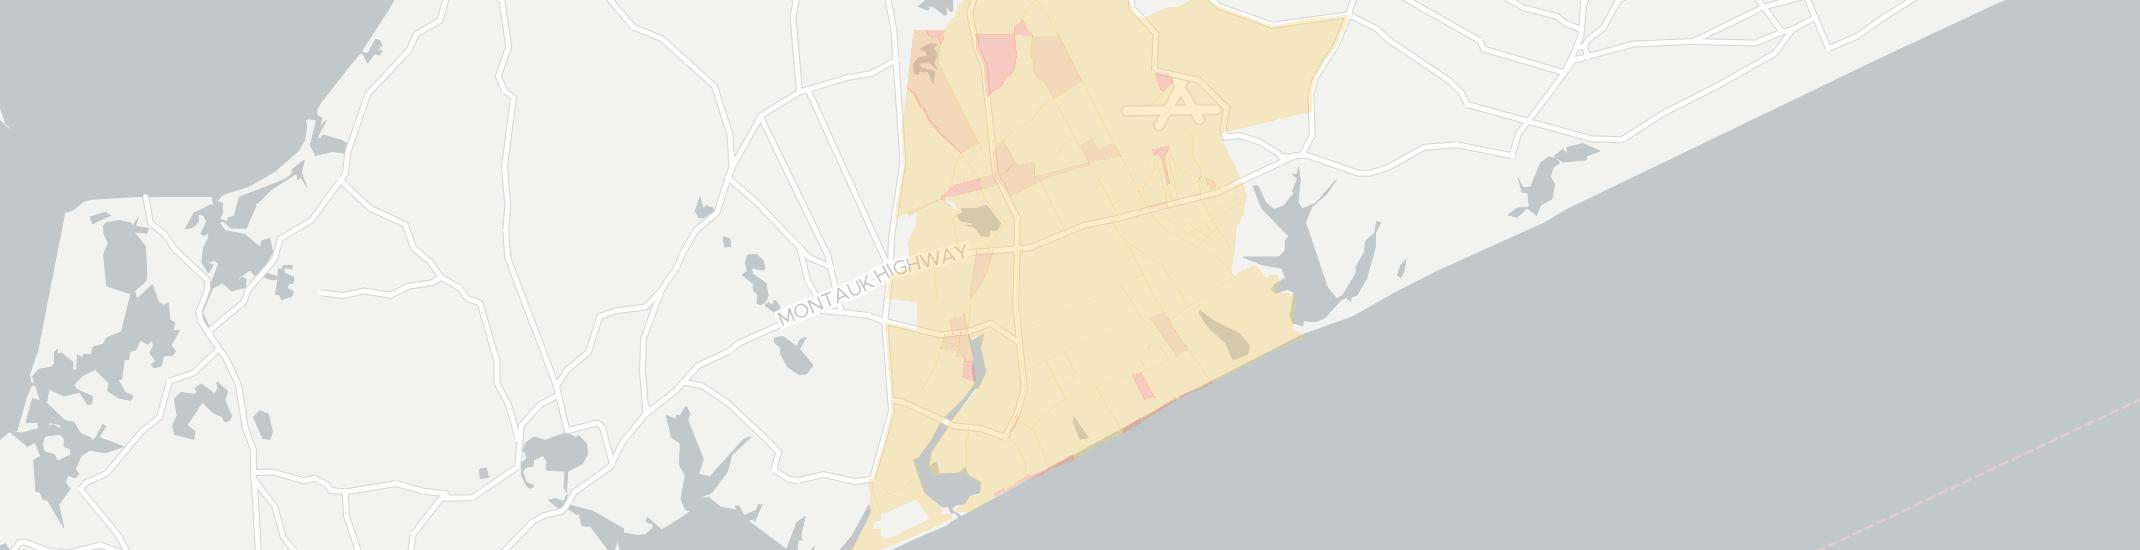 Sagaponack Internet Competition Map. Click for interactive map.